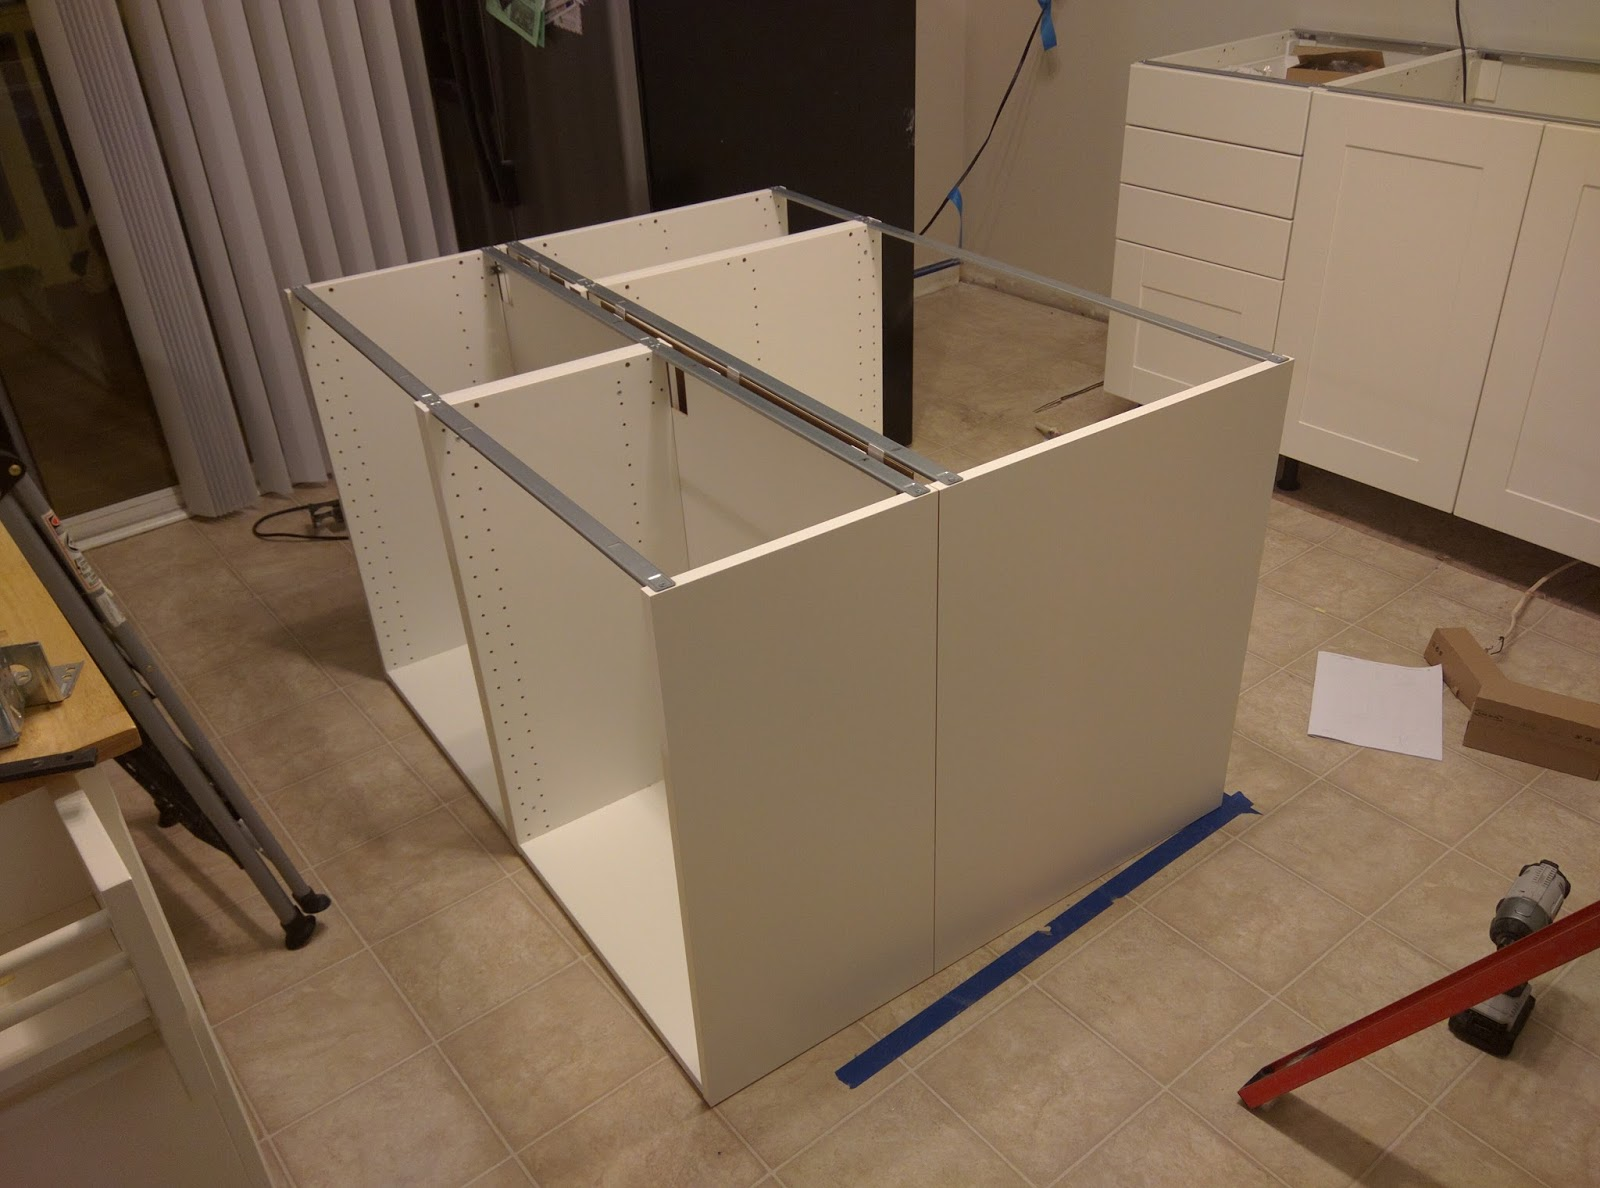 how to build a kitchen island with cabinets organization ideas diy technology and other random stuff remodel